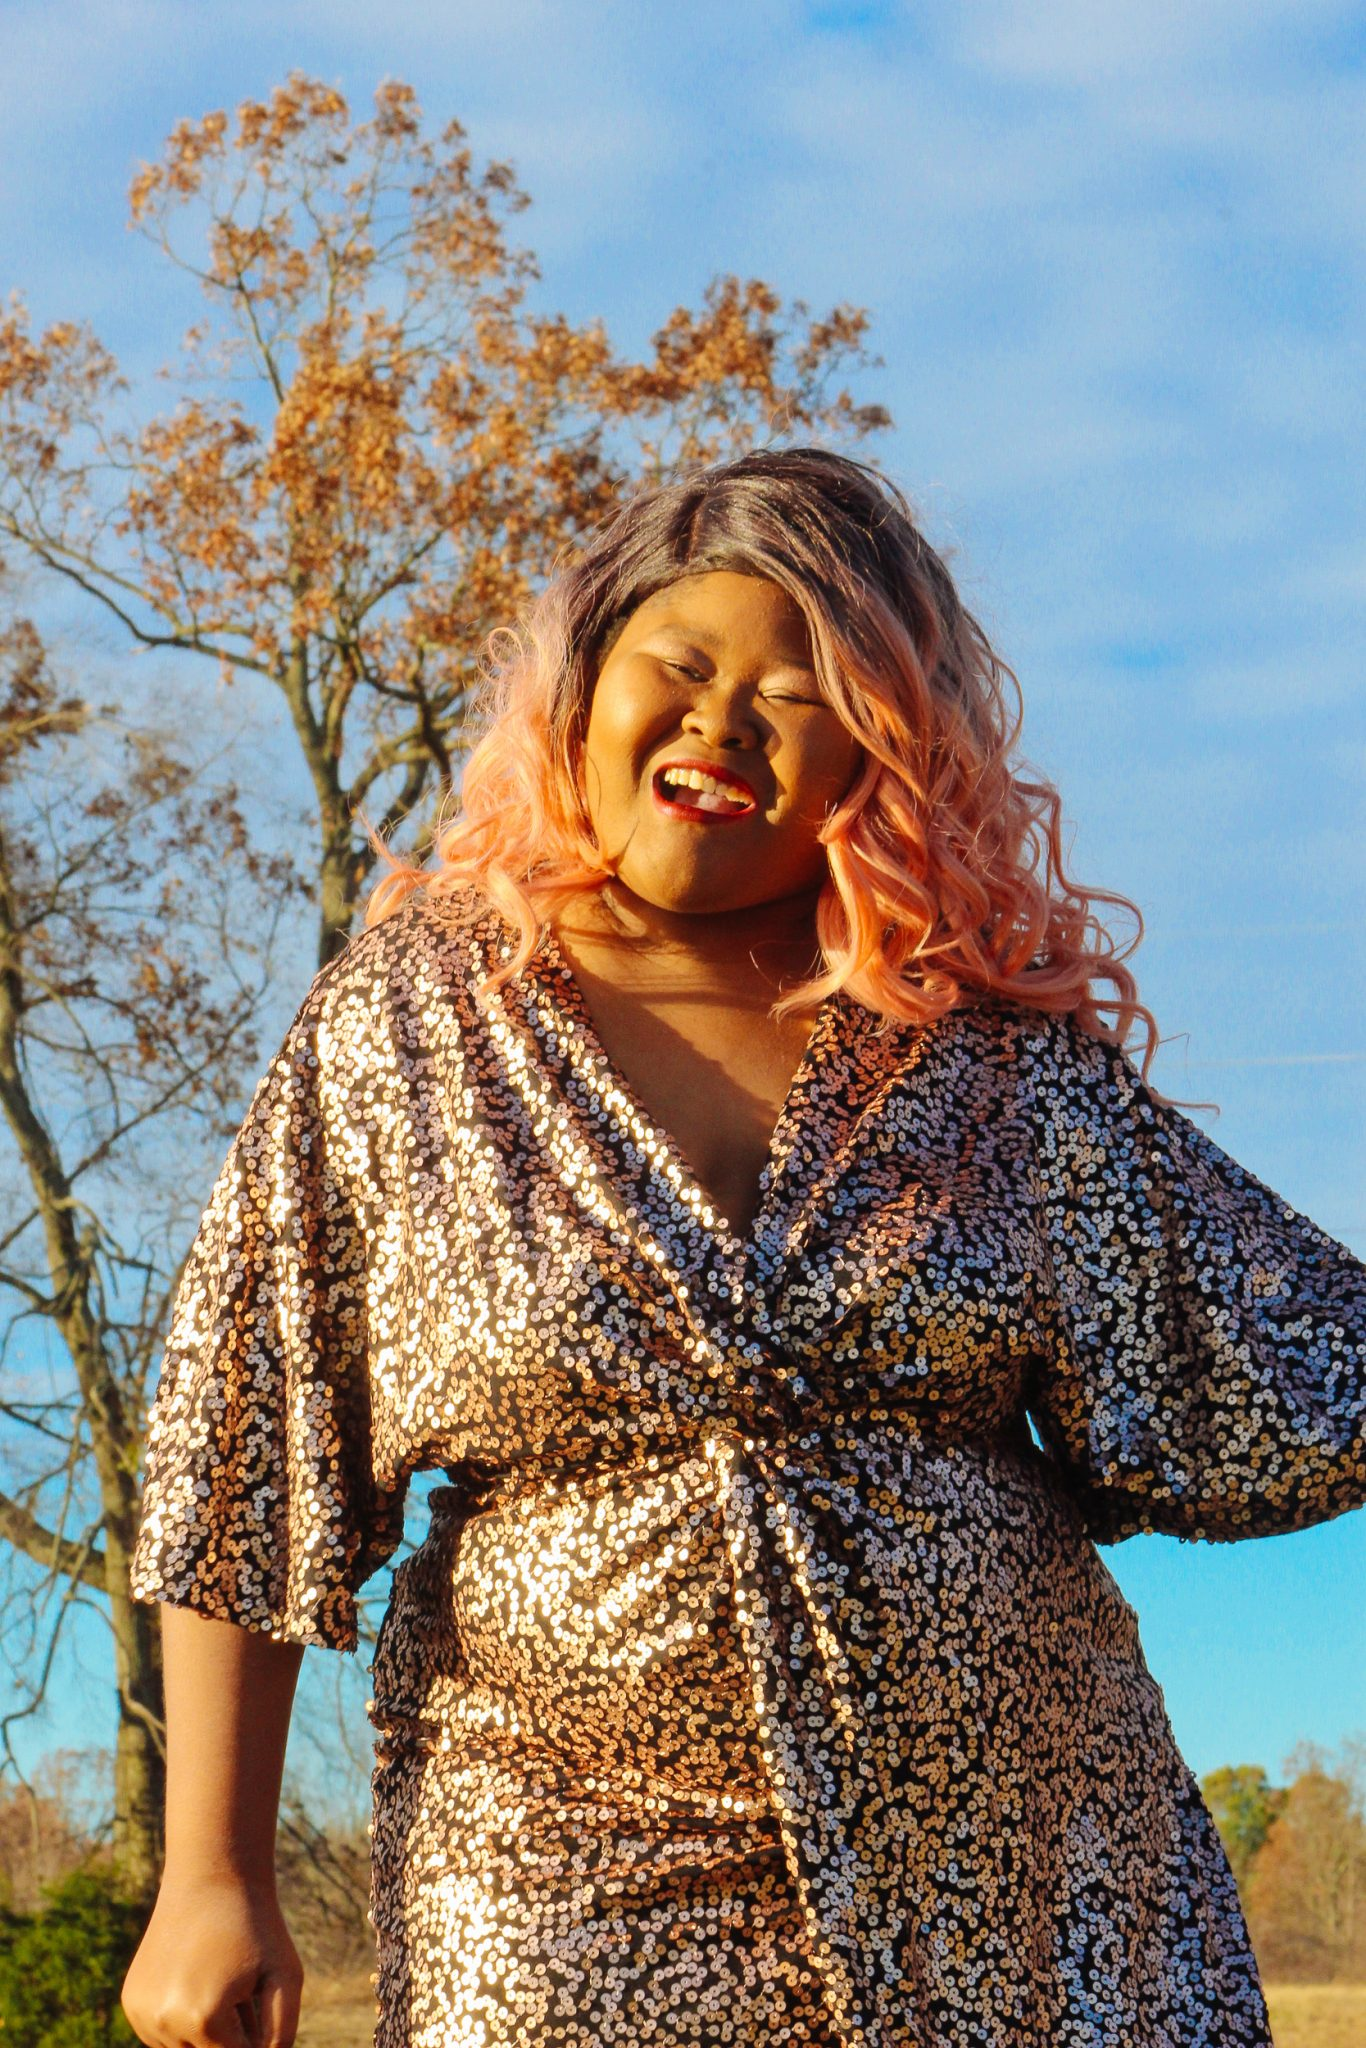 Holiday Fashion Inspiration With Simply Be | If you are looking for some holiday inspiration this year, please click through to check out this look from Simply Be. Rose gold and sequins? Those are a girls best friends! #PlusSizeFashion #SimplyBeUSA #SimplyBe #CurvyFashion #CurvyFashionista #PSOOTD